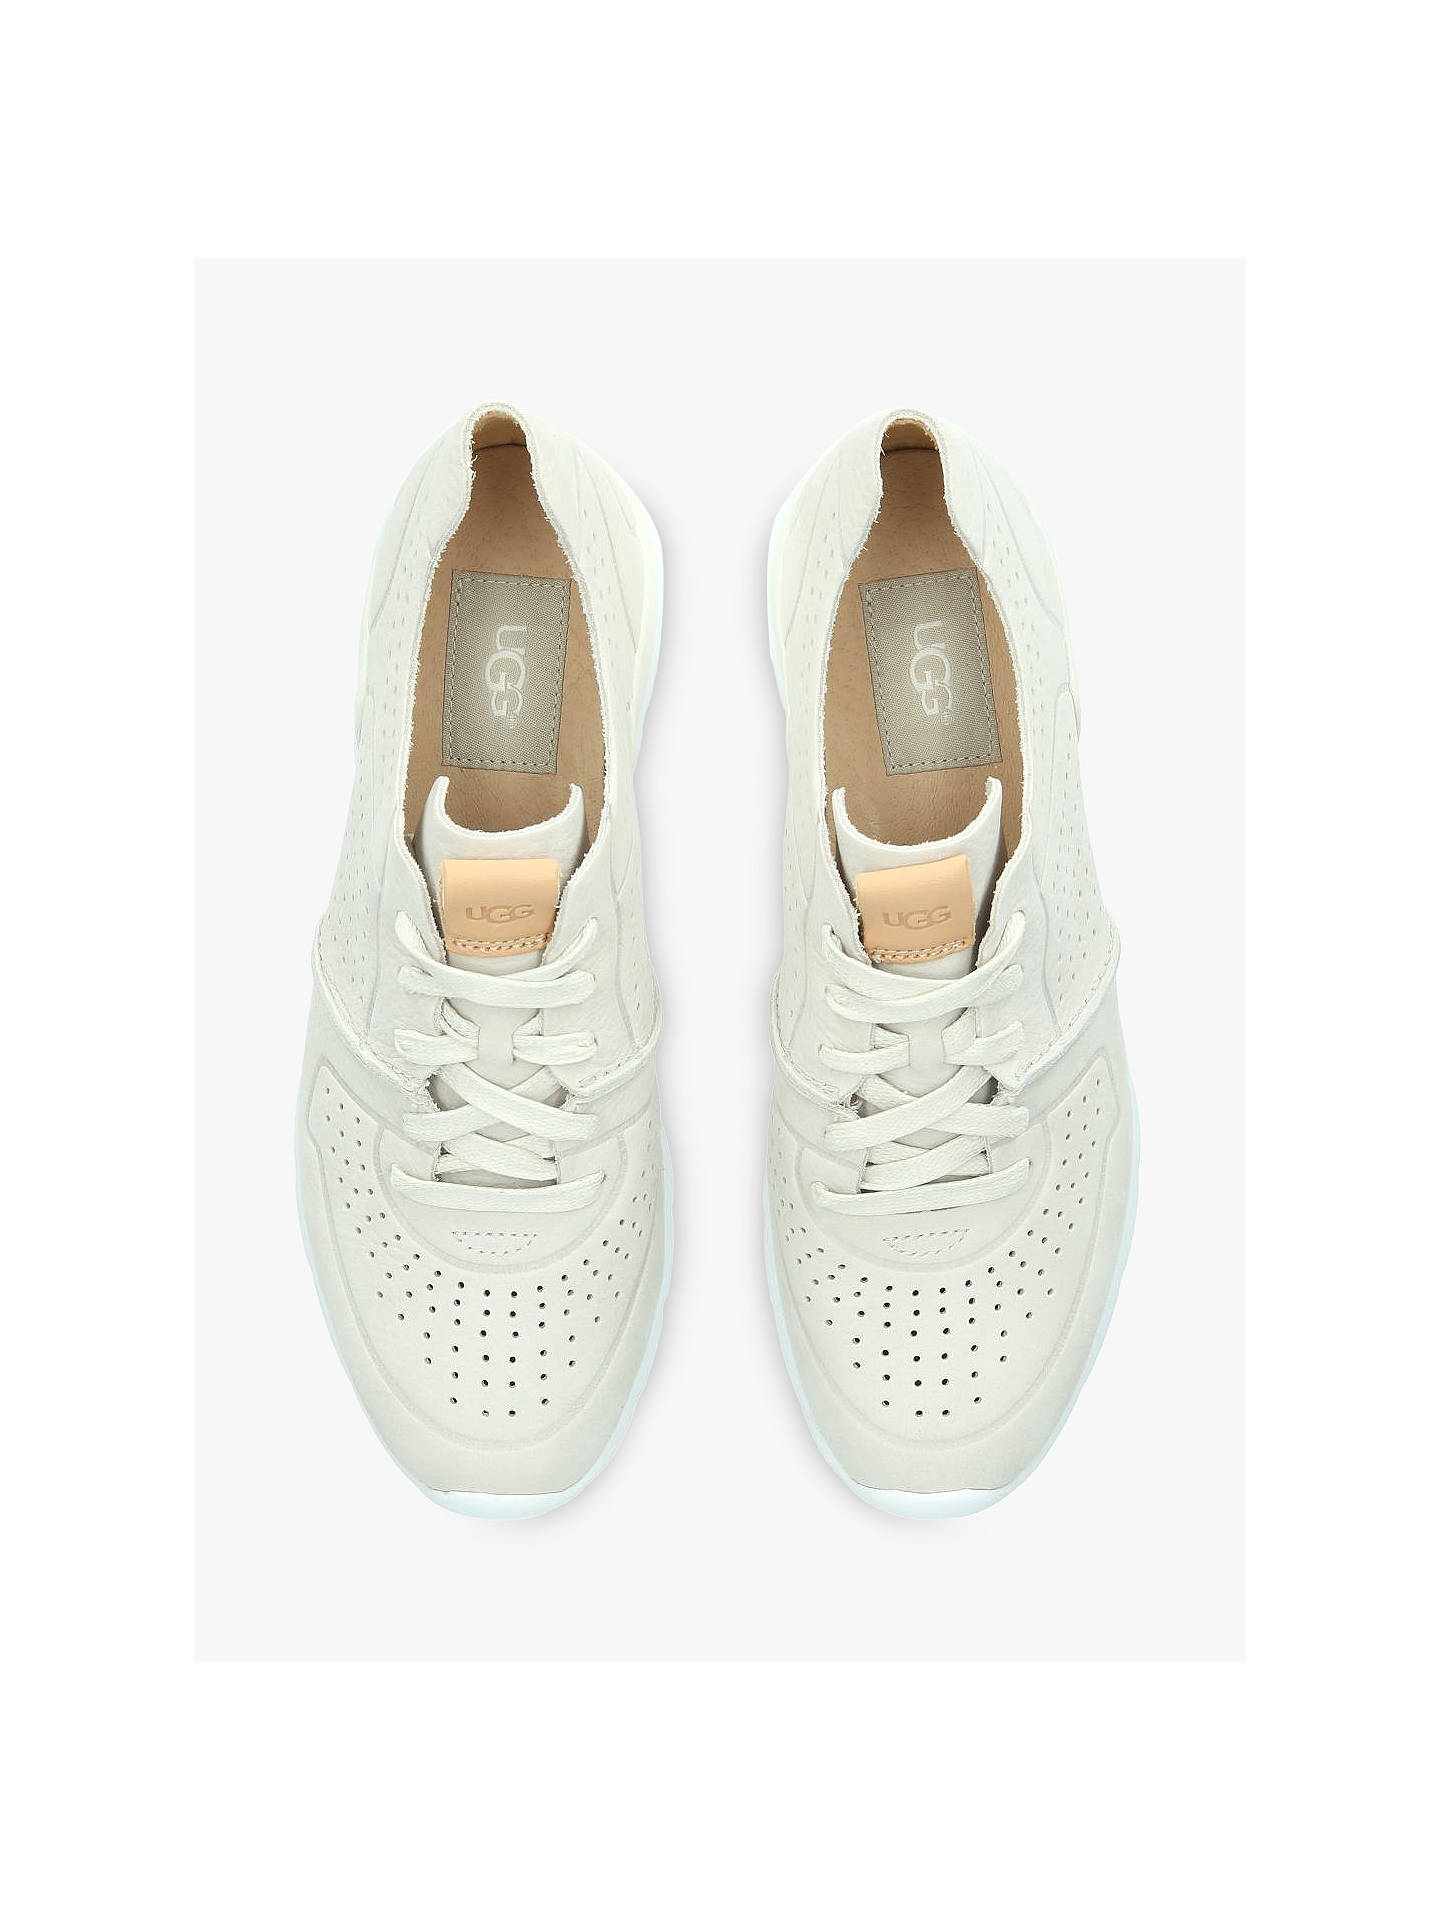 7ddabc3a0df UGG Tye Leather Lace Up Trainers at John Lewis & Partners